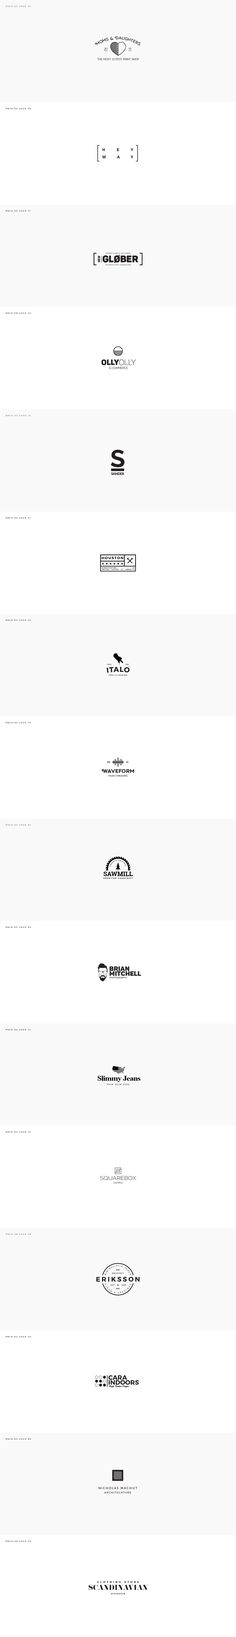 Camera Shot Logo Logos, Logo templates and Camera shots - monster resume templates